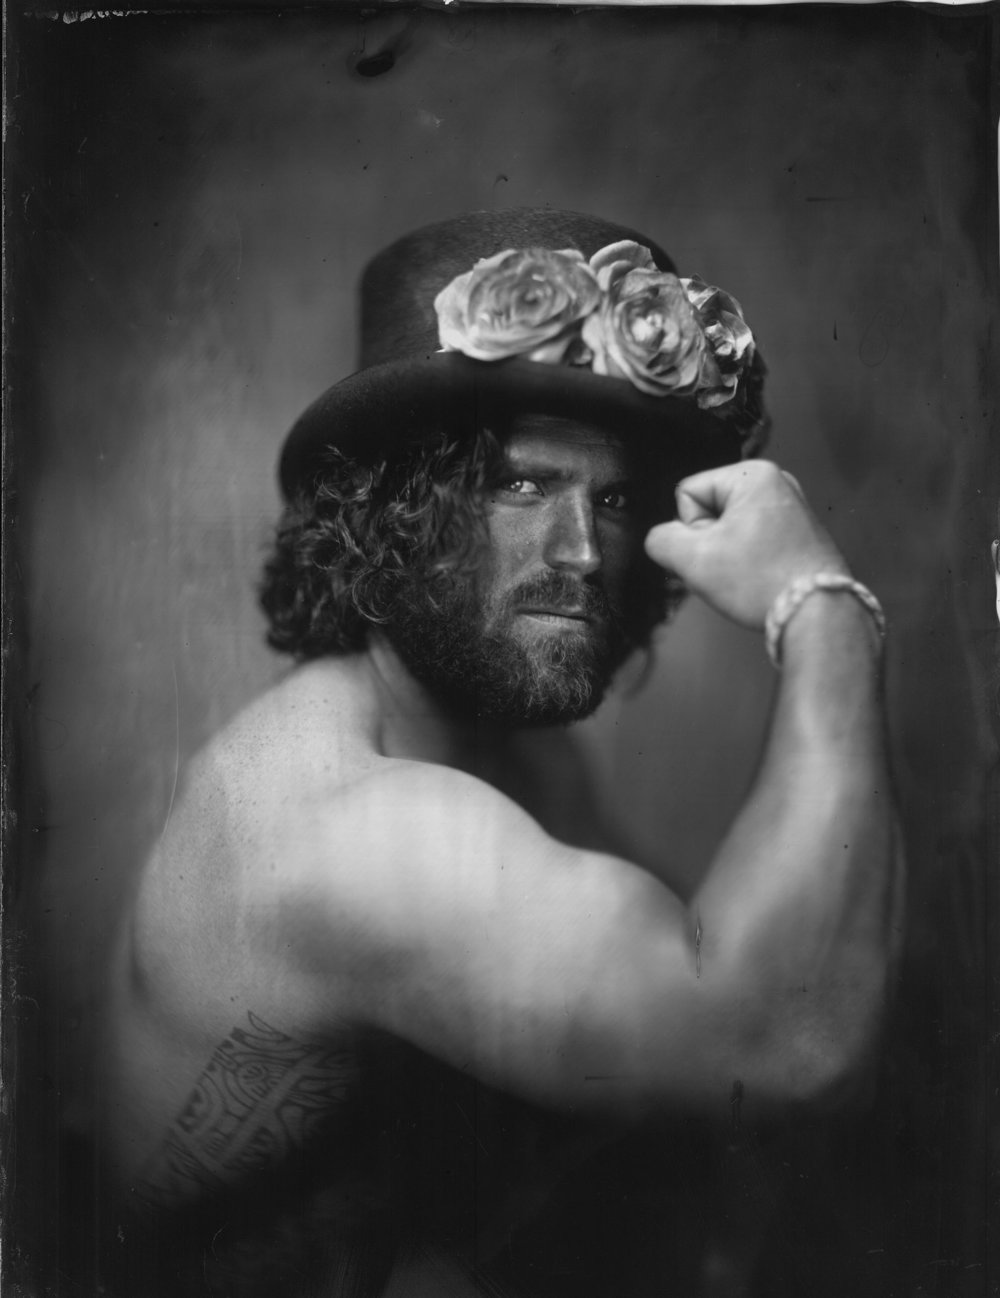 Flowers hat and associate - By: Wilfried Thomas  https://wilfriedthomascollodion.wordpress.com/